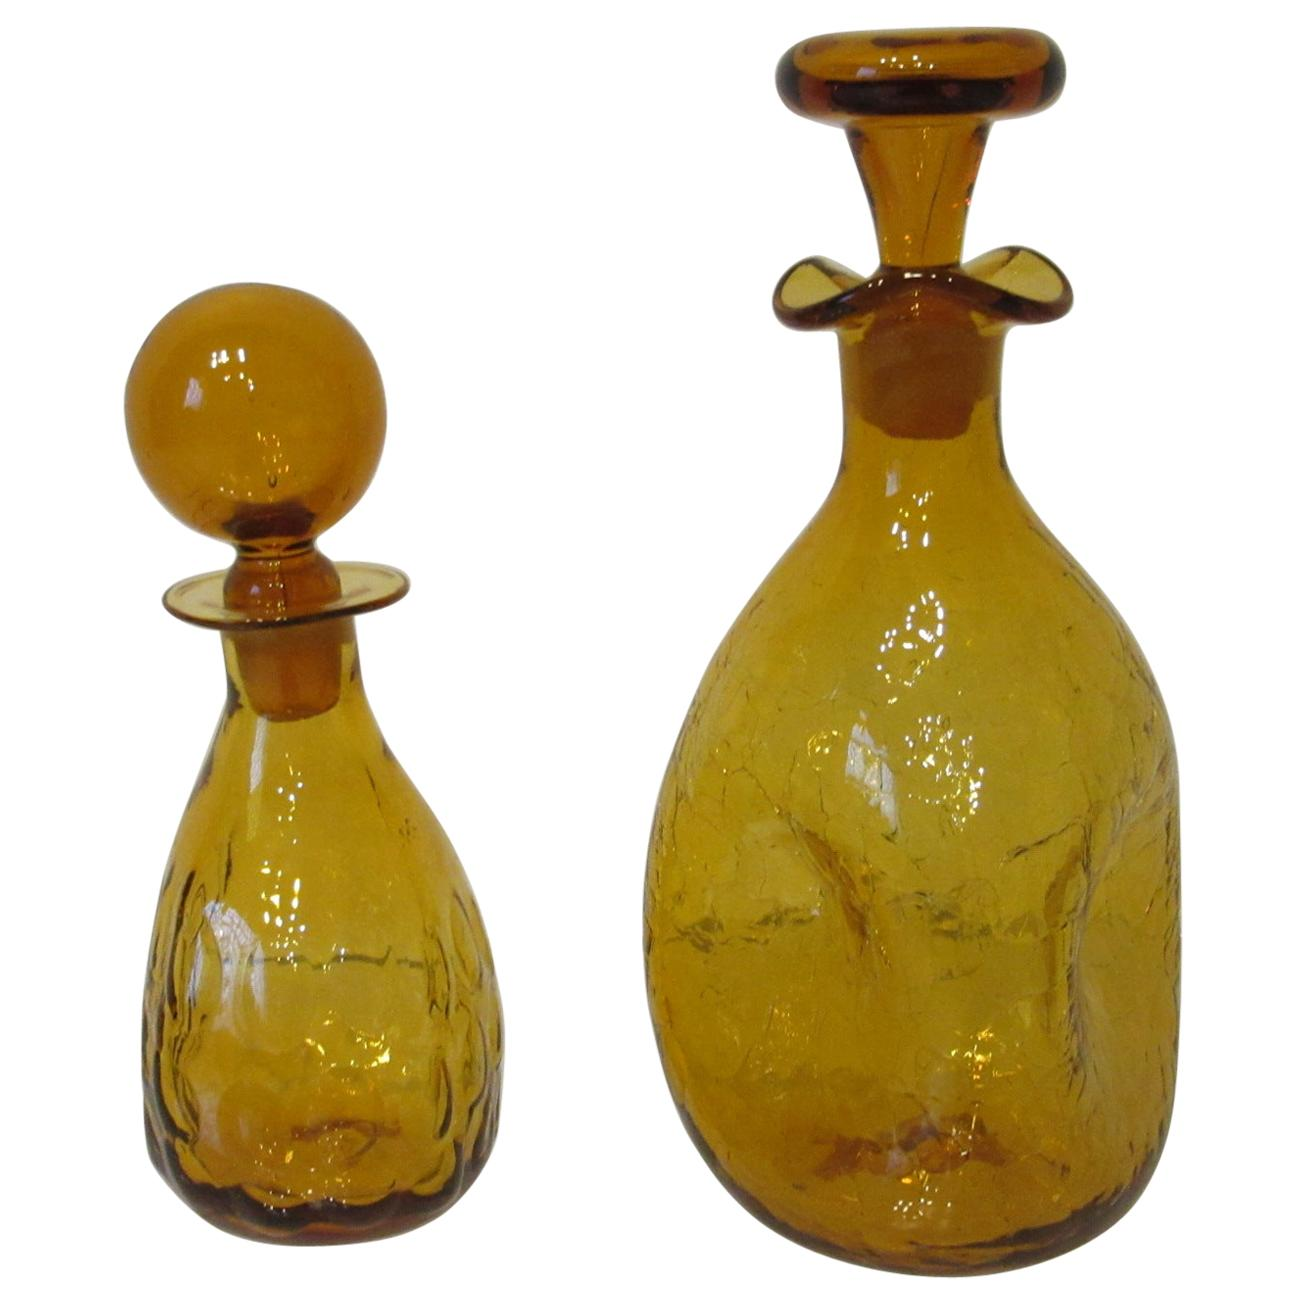 Blenko Hand Blown Decanters by Husted and Anderson